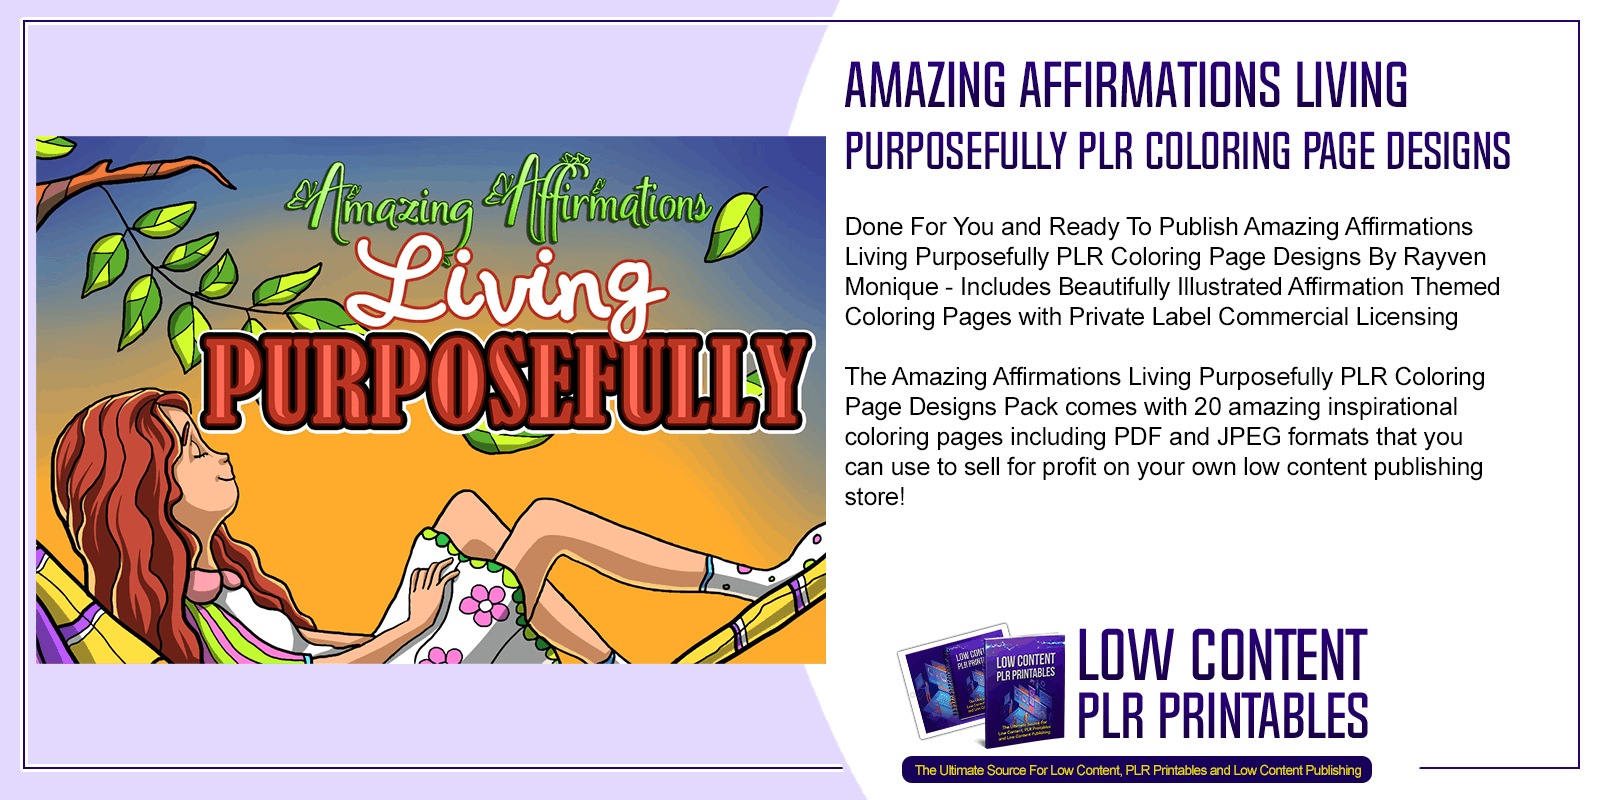 Amazing Affirmations Living Purposefully PLR Coloring Page Designs